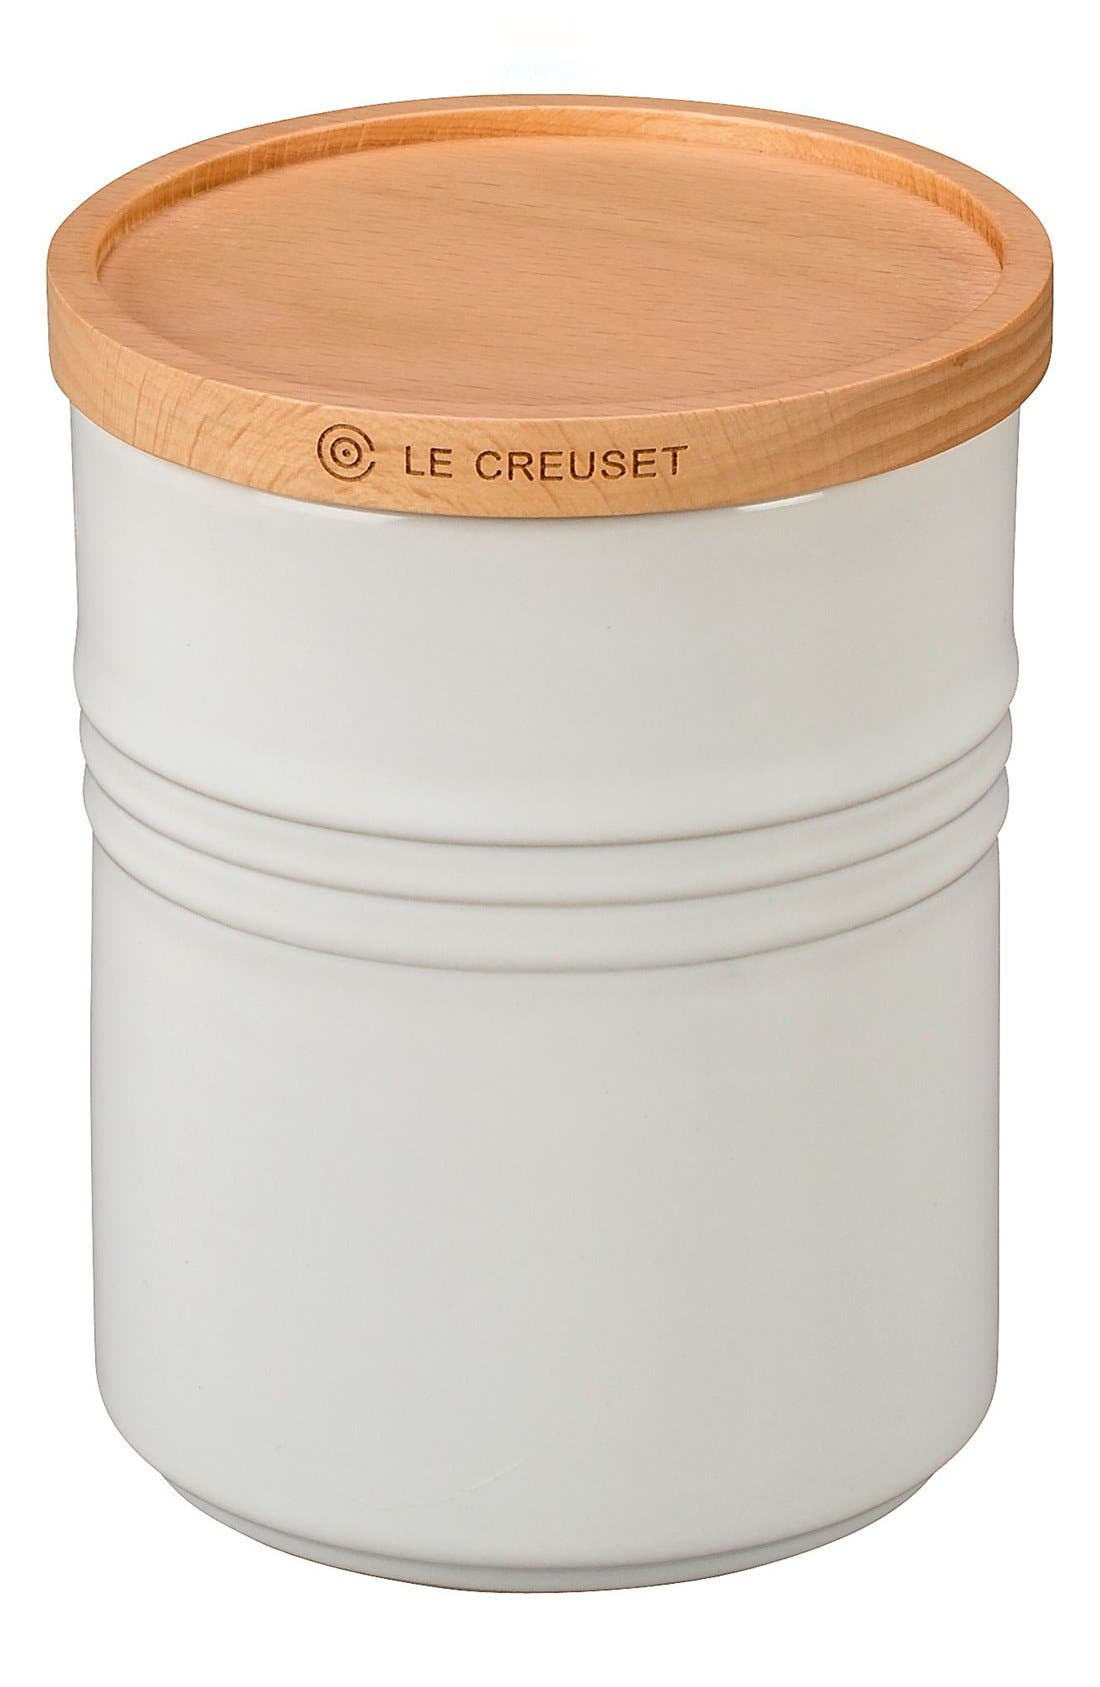 Glazed Stoneware 2 1/2 Quart Storage Canister with Wooden Lid,                         Main,                         color, WHITE